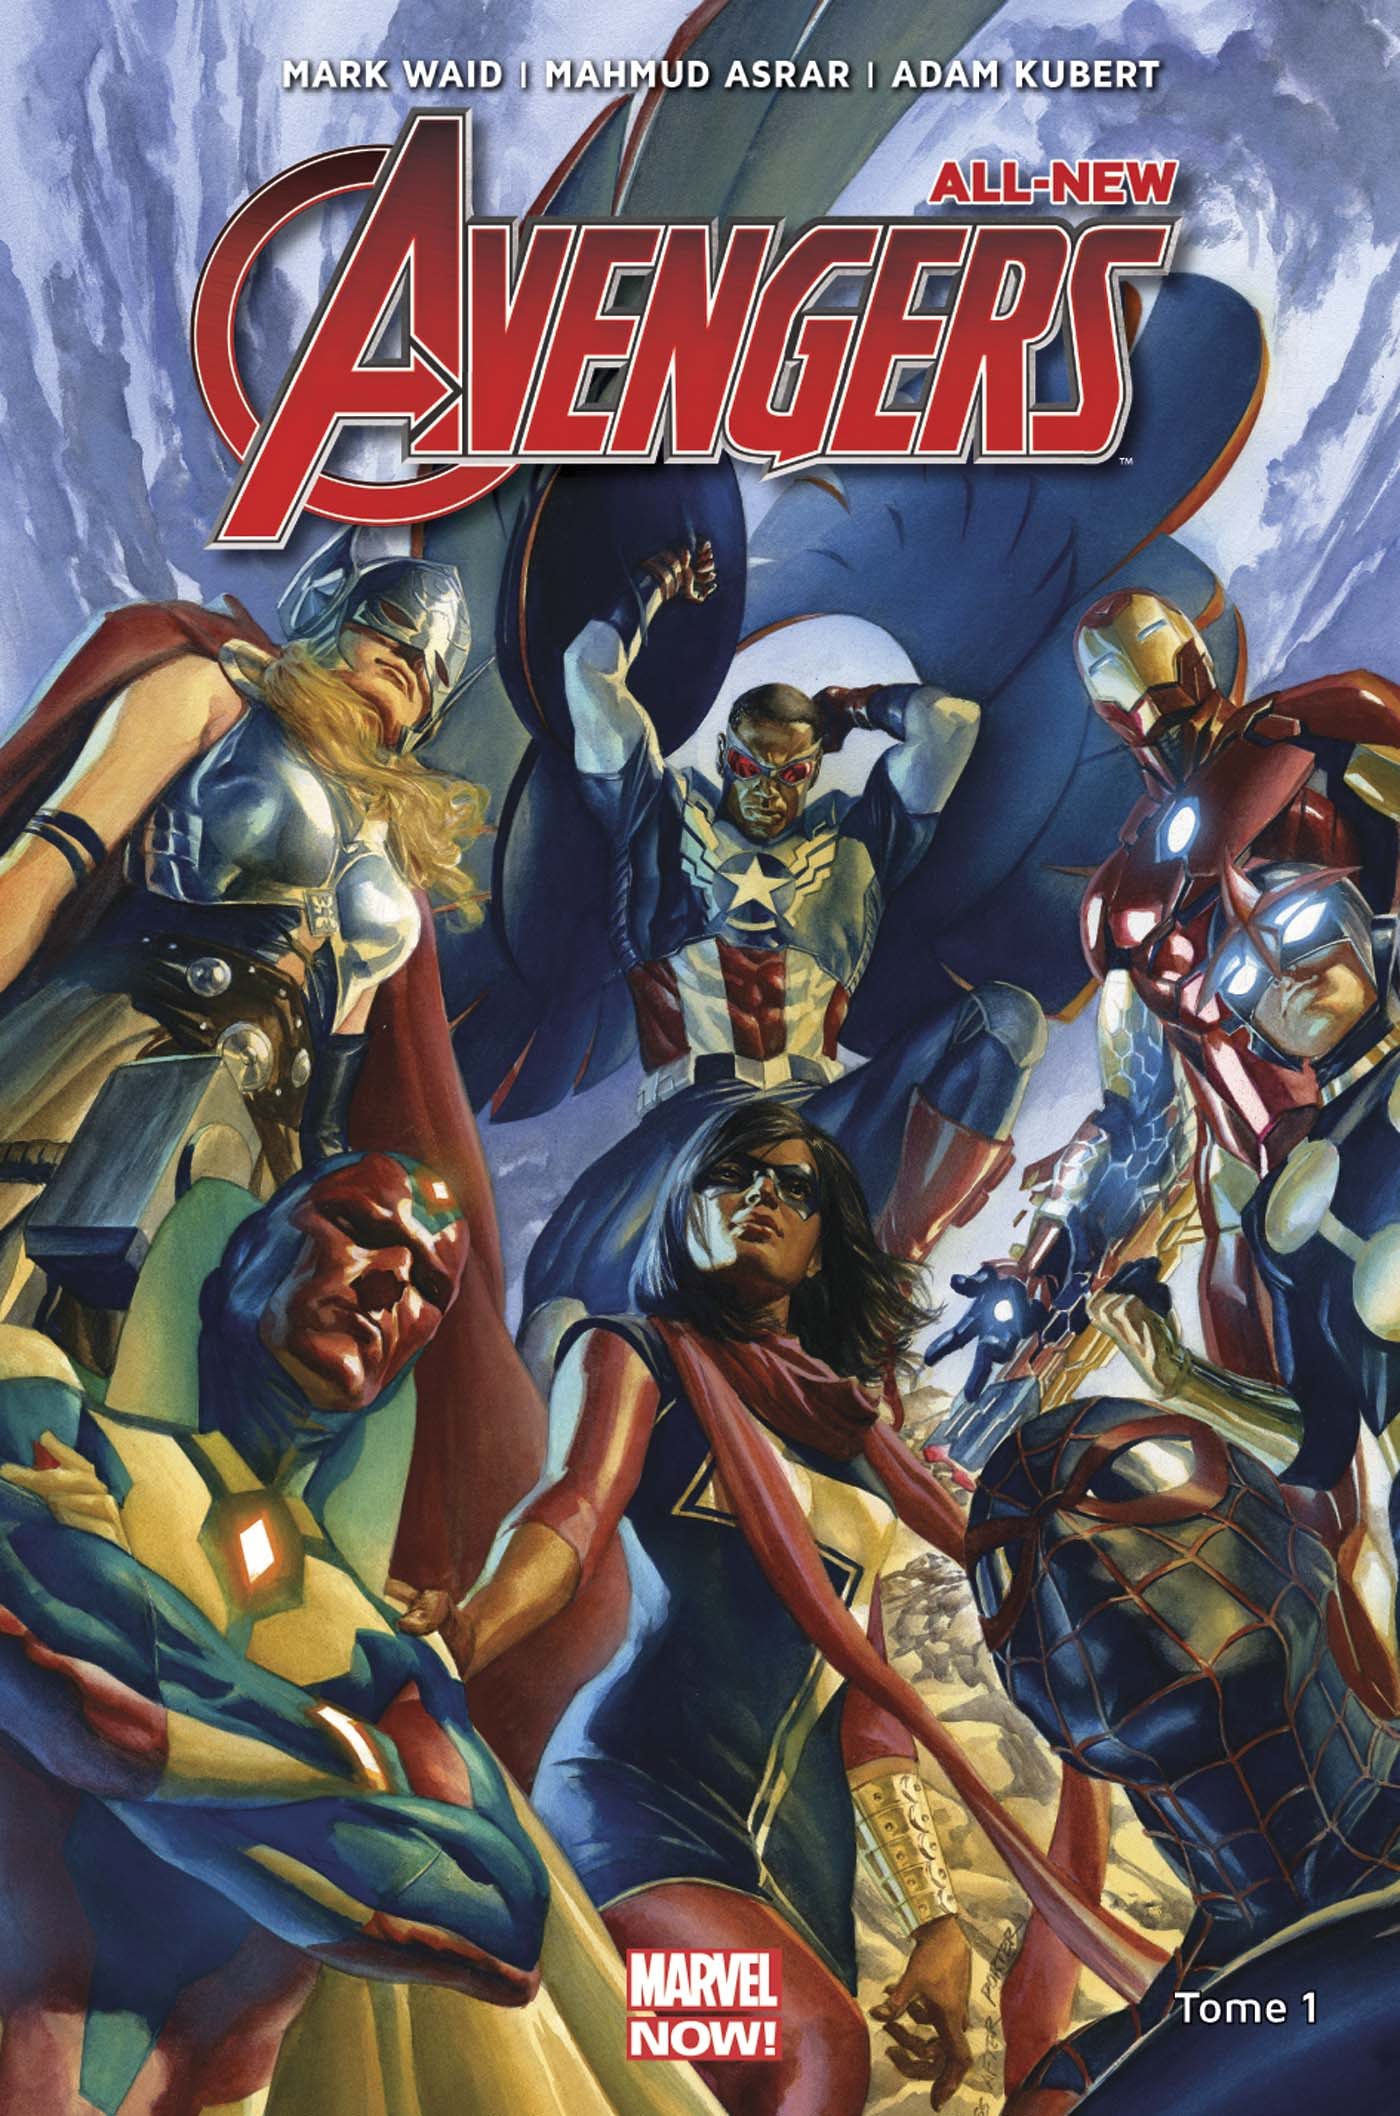 Uncanny Avengers All New All Different tome 1 (VF)